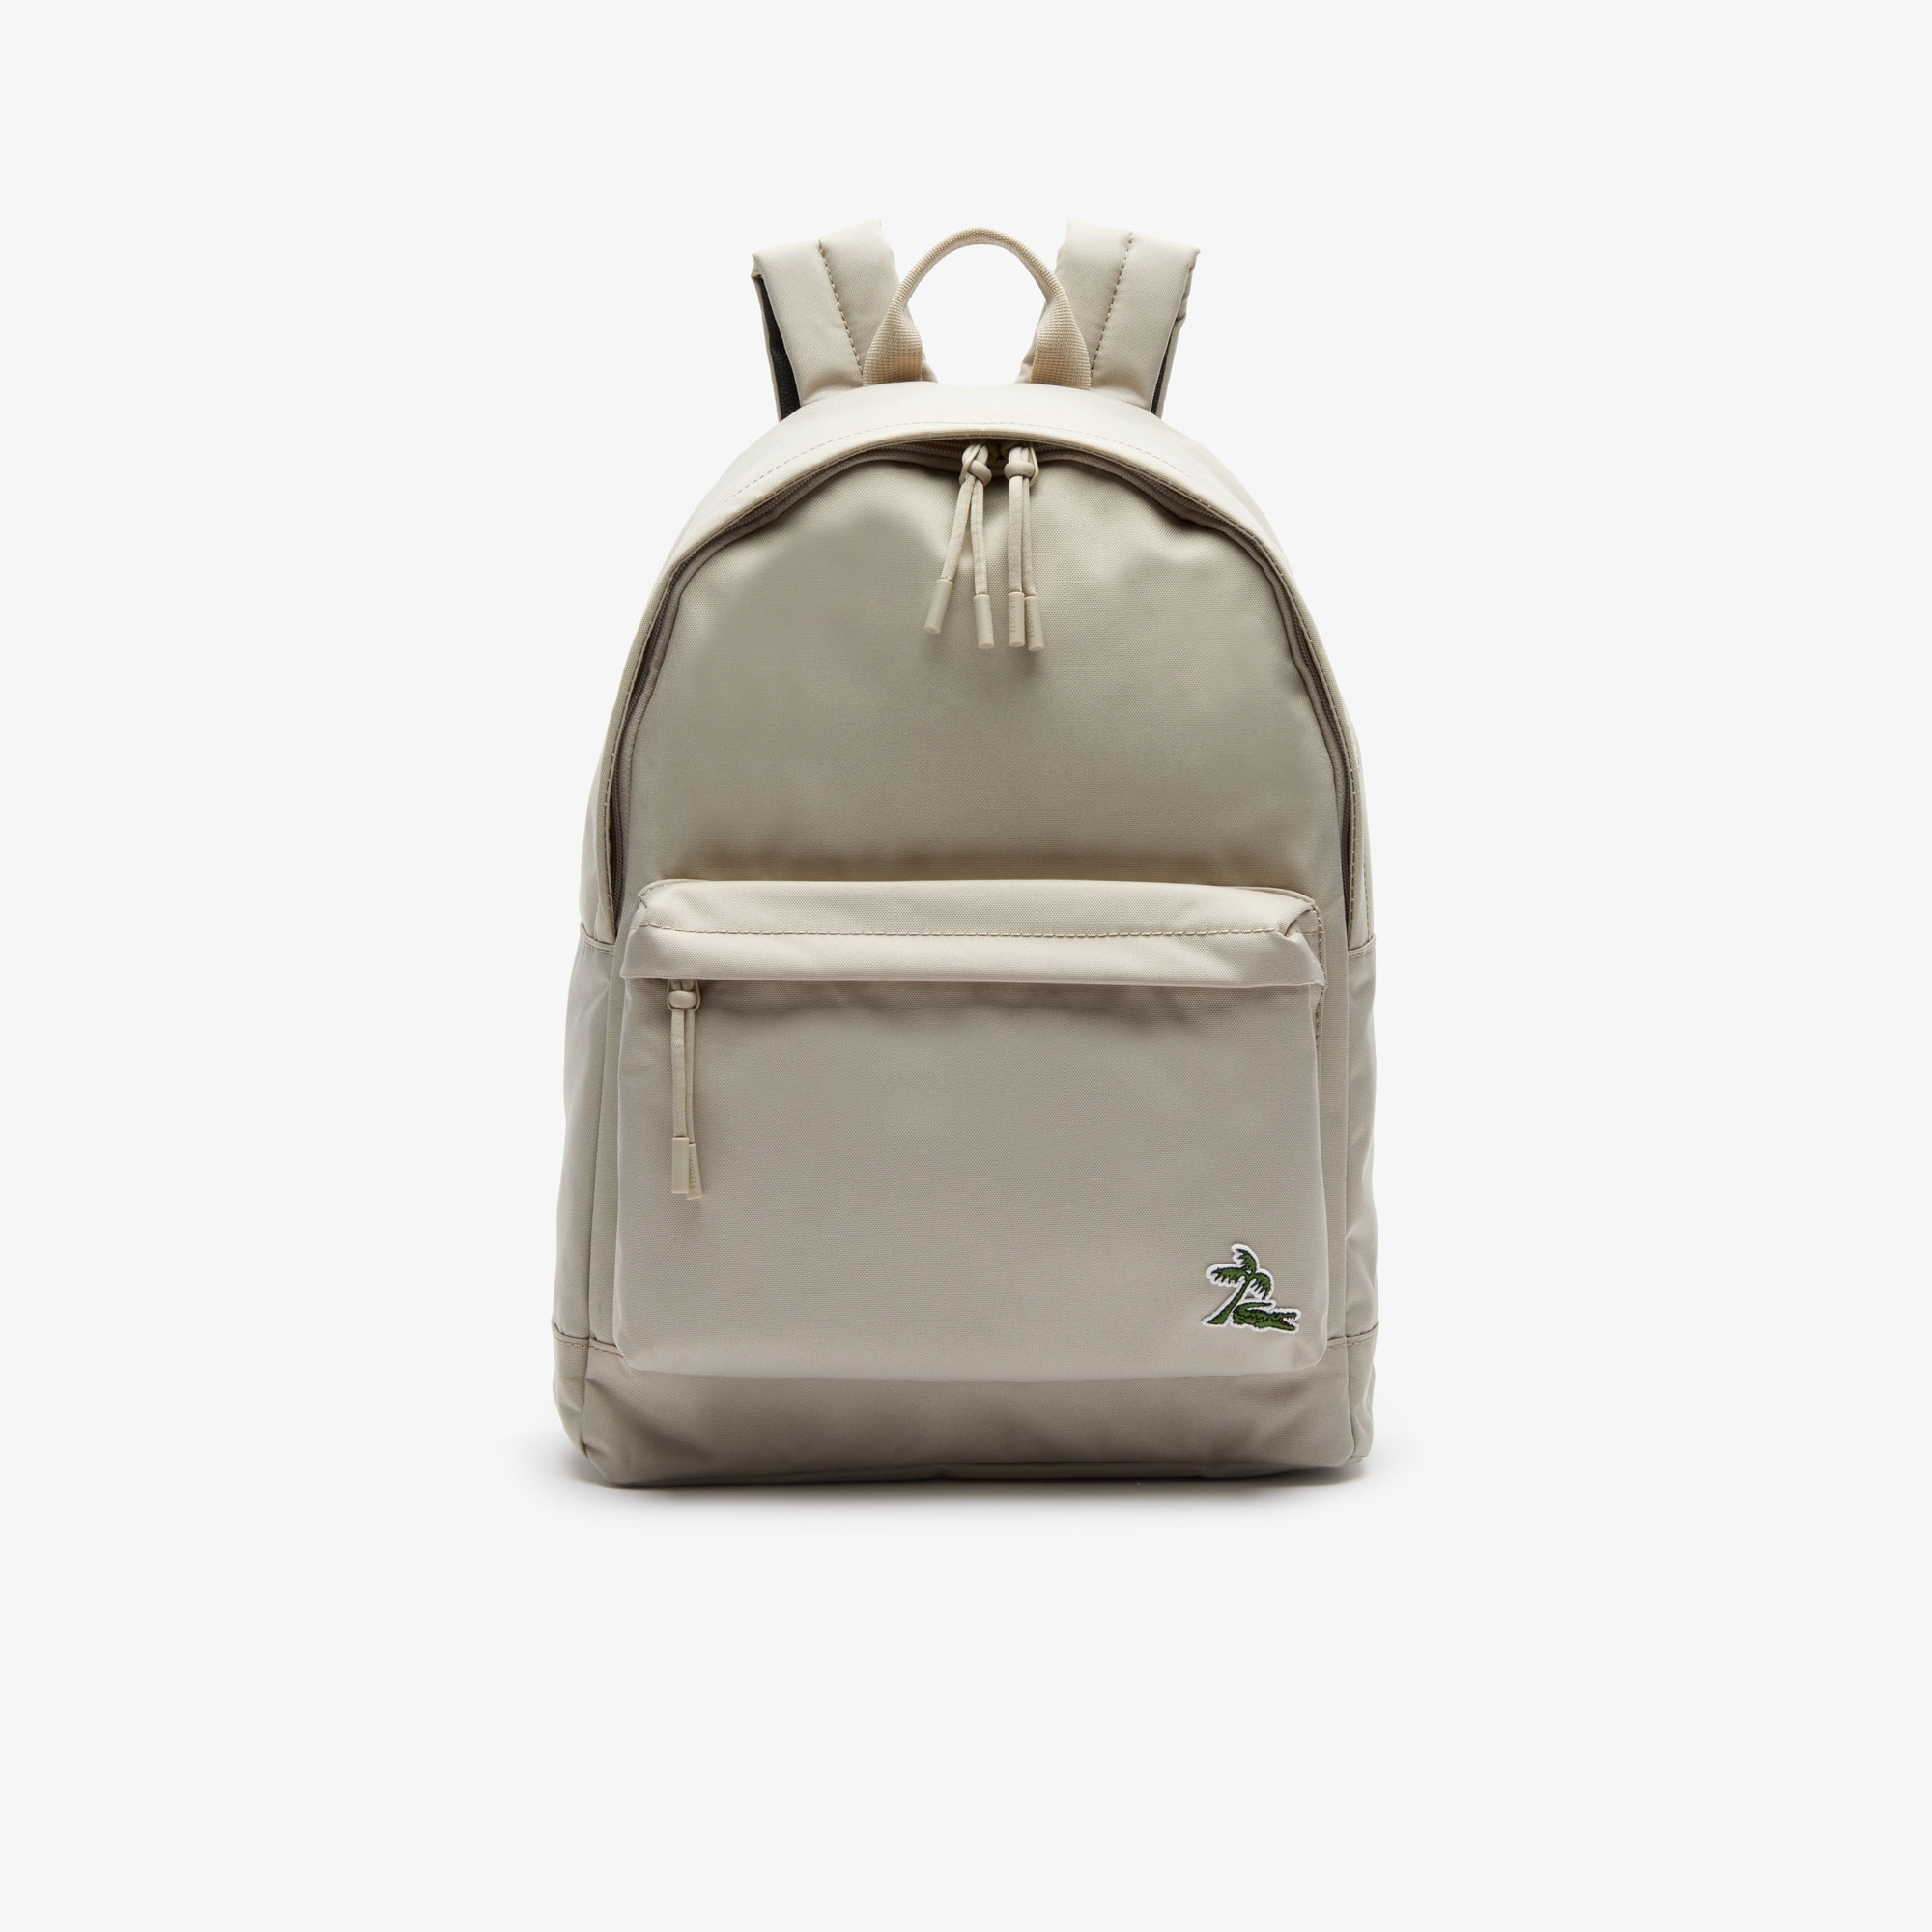 8579d43e7be8 Men's Bags | Accessories | Lacoste